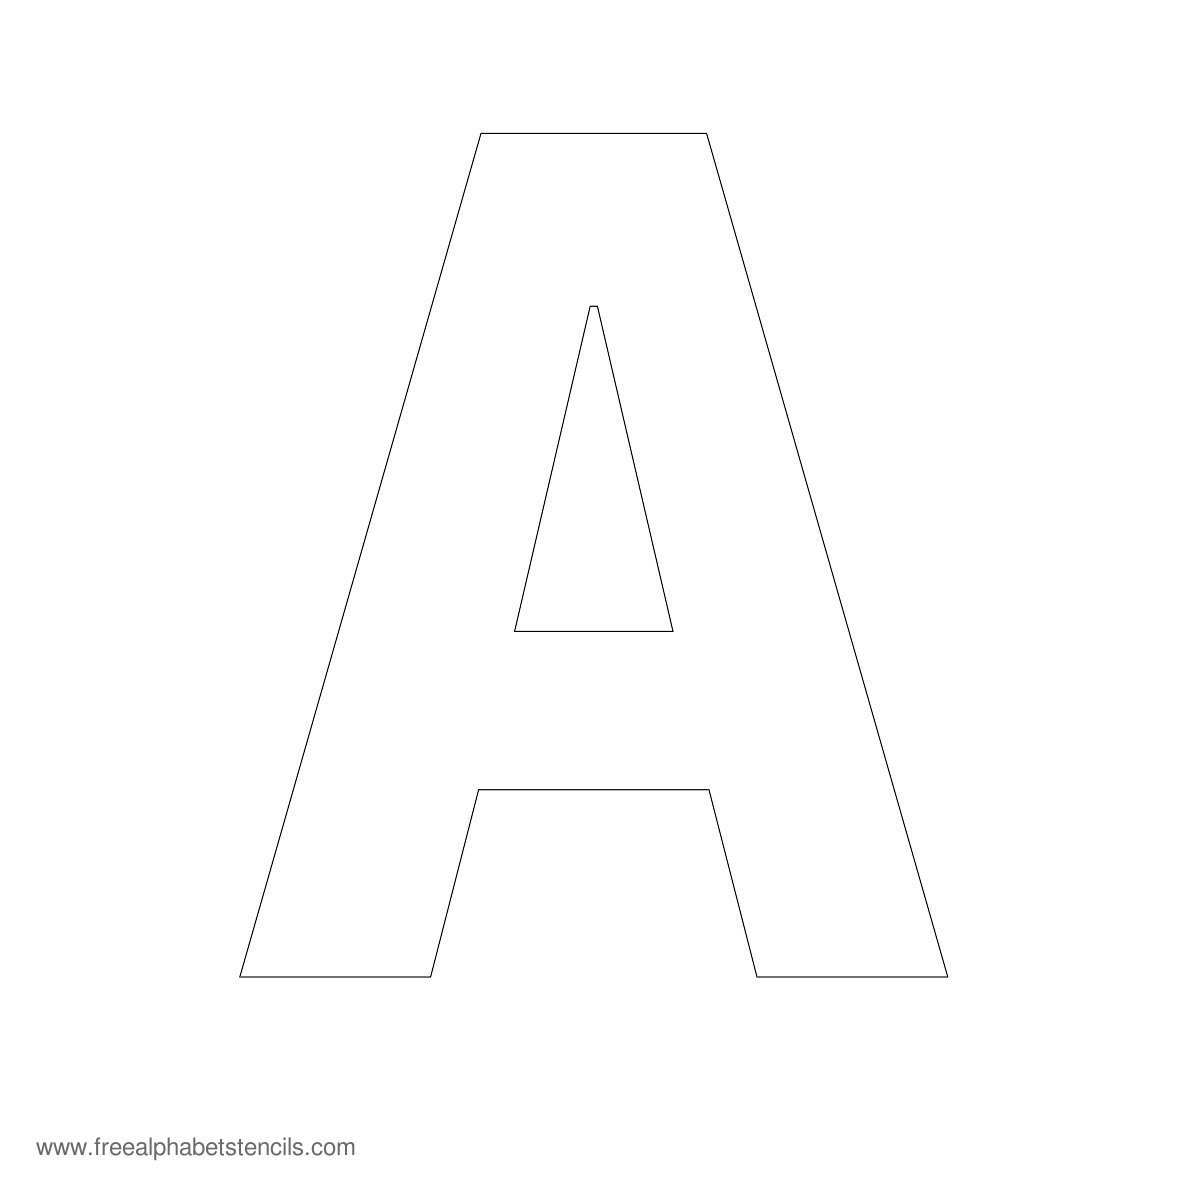 5 Images of Free Large Size Alphabet Letter Printable